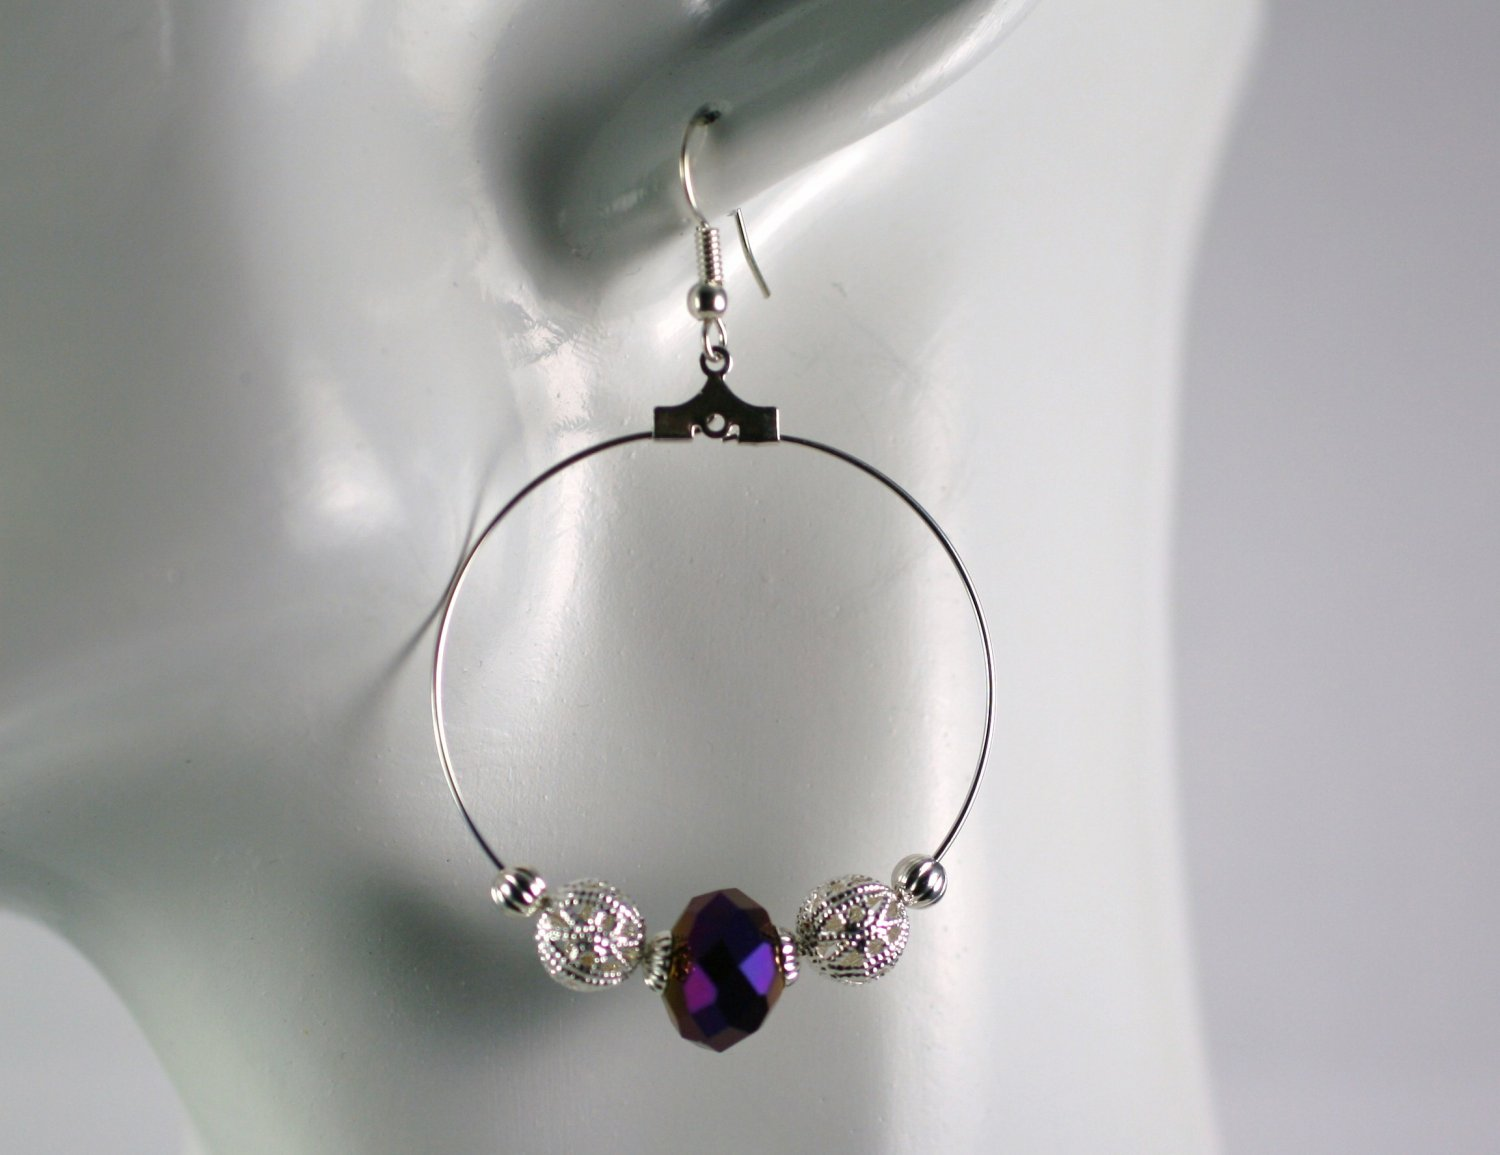 Silver Hoop Earrings with Purple Glass Beads 1.5 in.  Handcrafted Jewelry